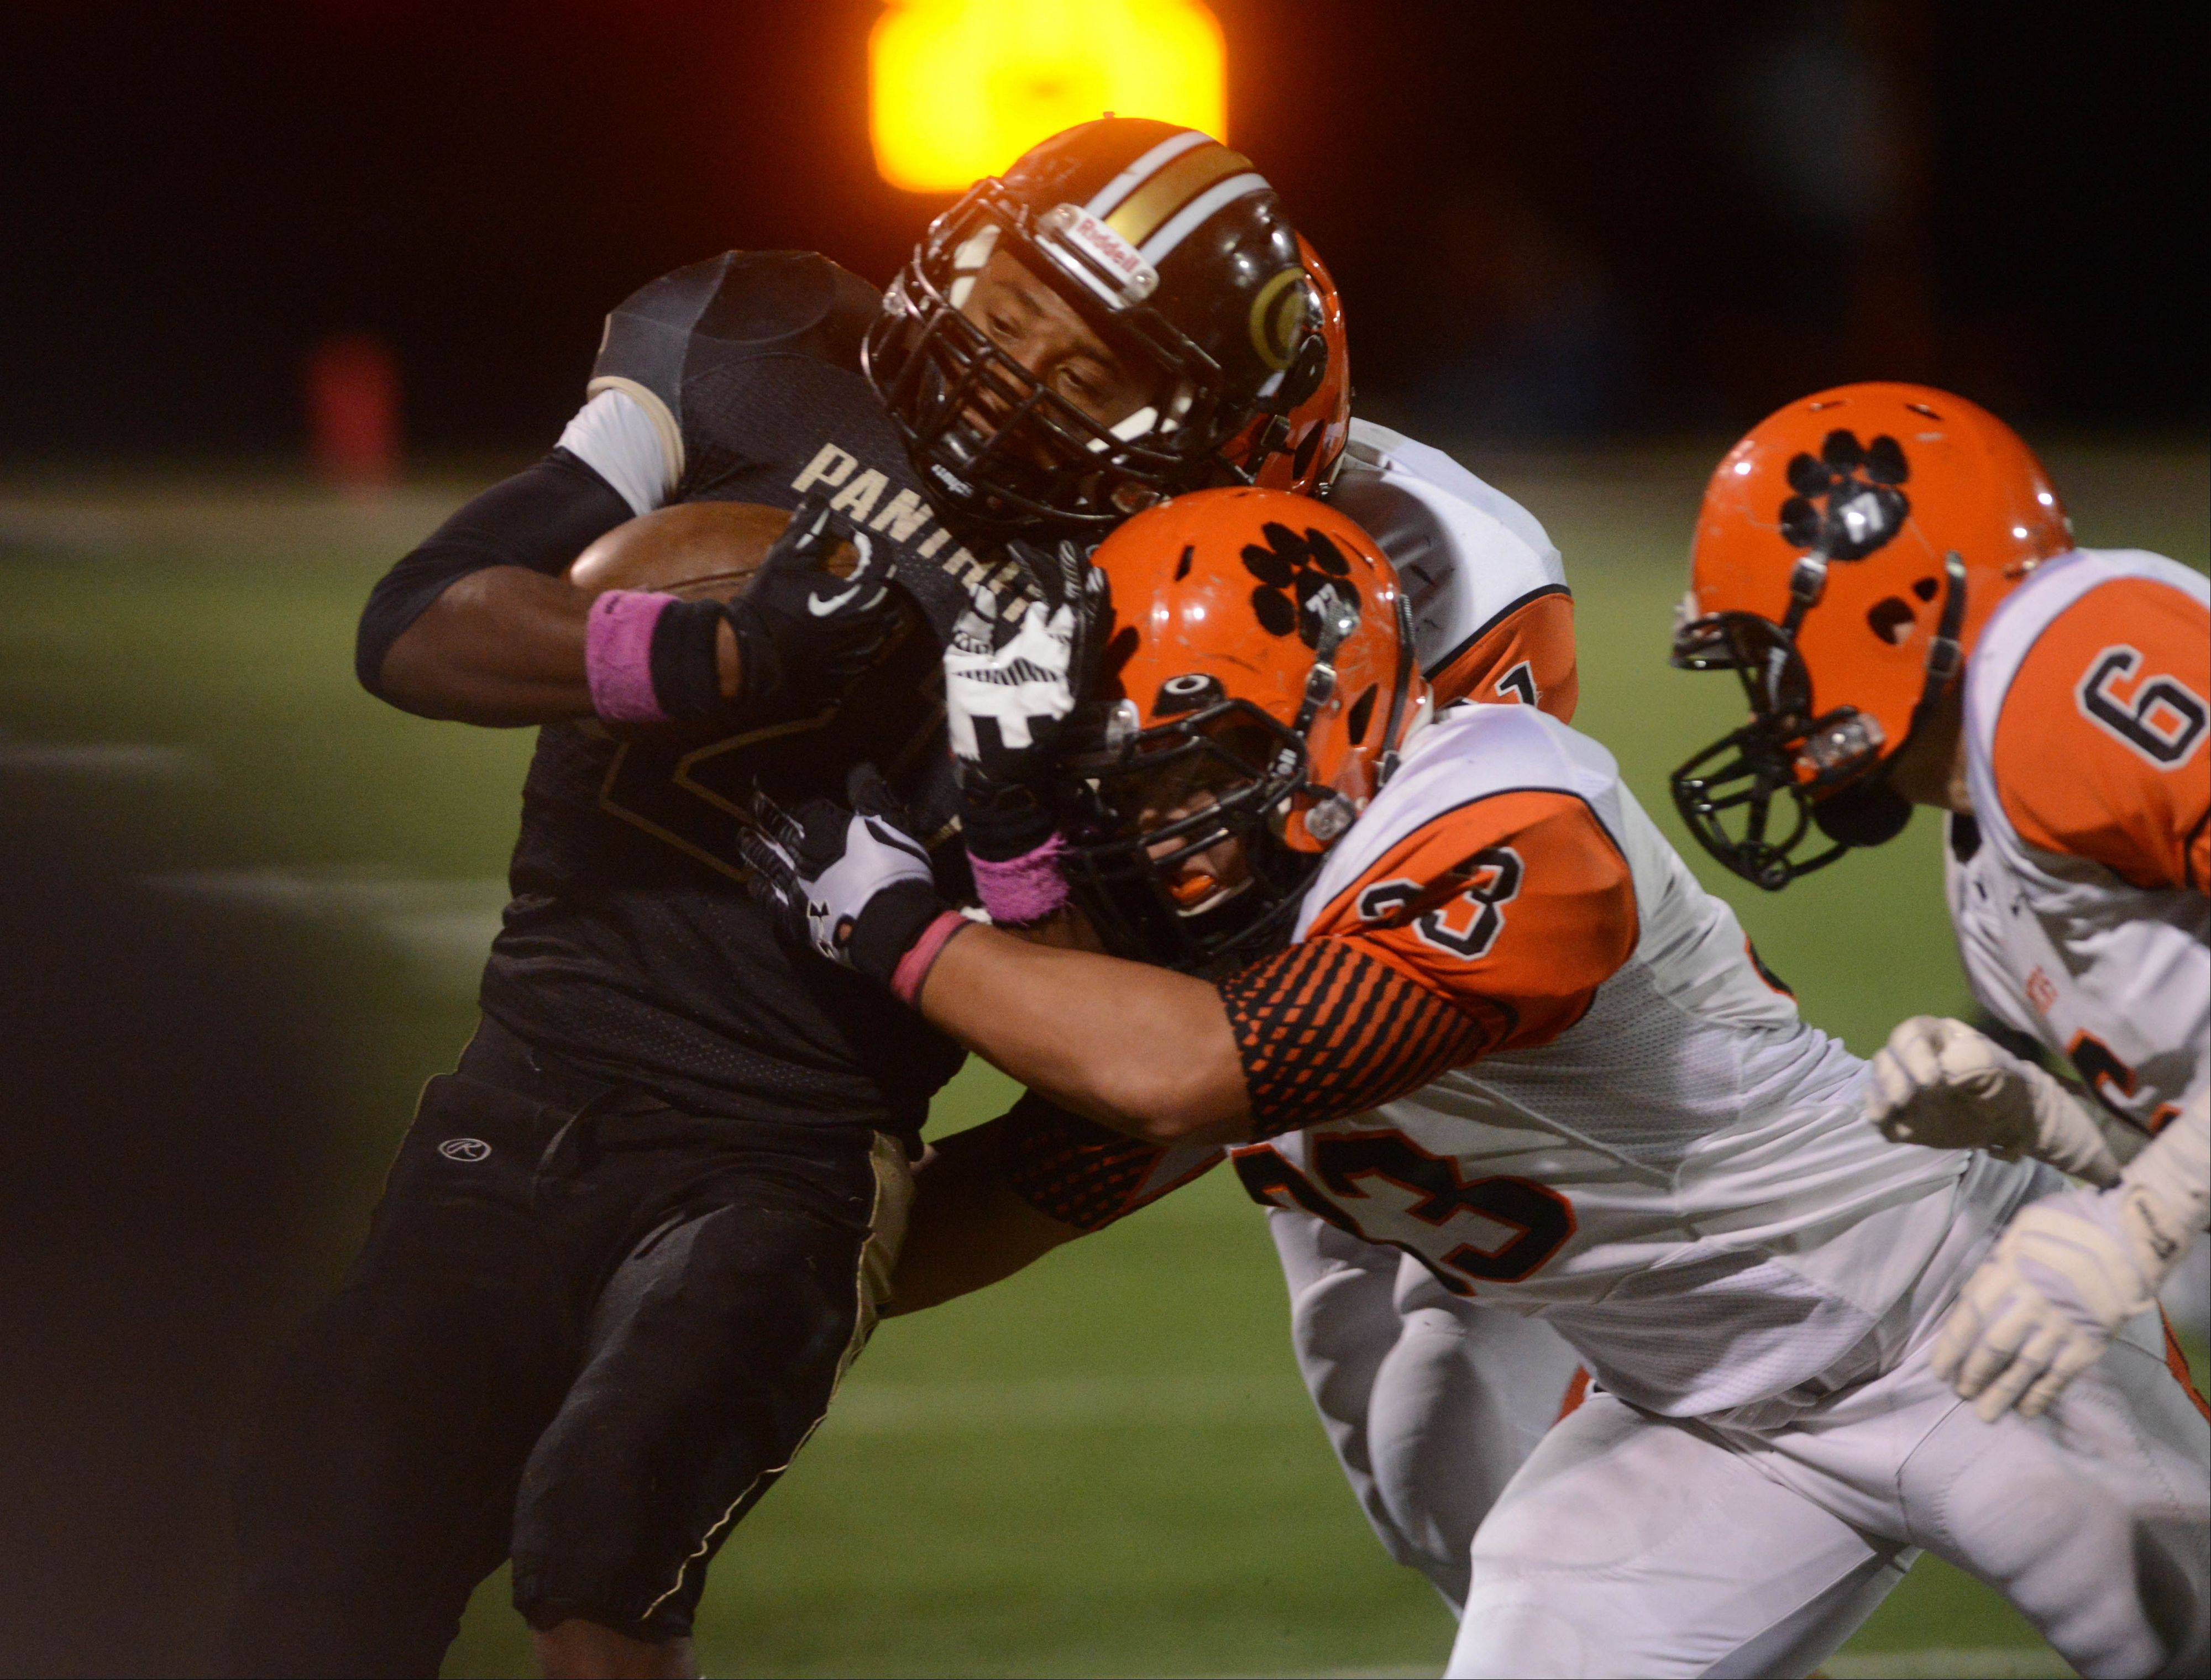 Justin Jackson of Glenbard North is pulled down by Jake Kyllonen of Wheaton Warrenville South.